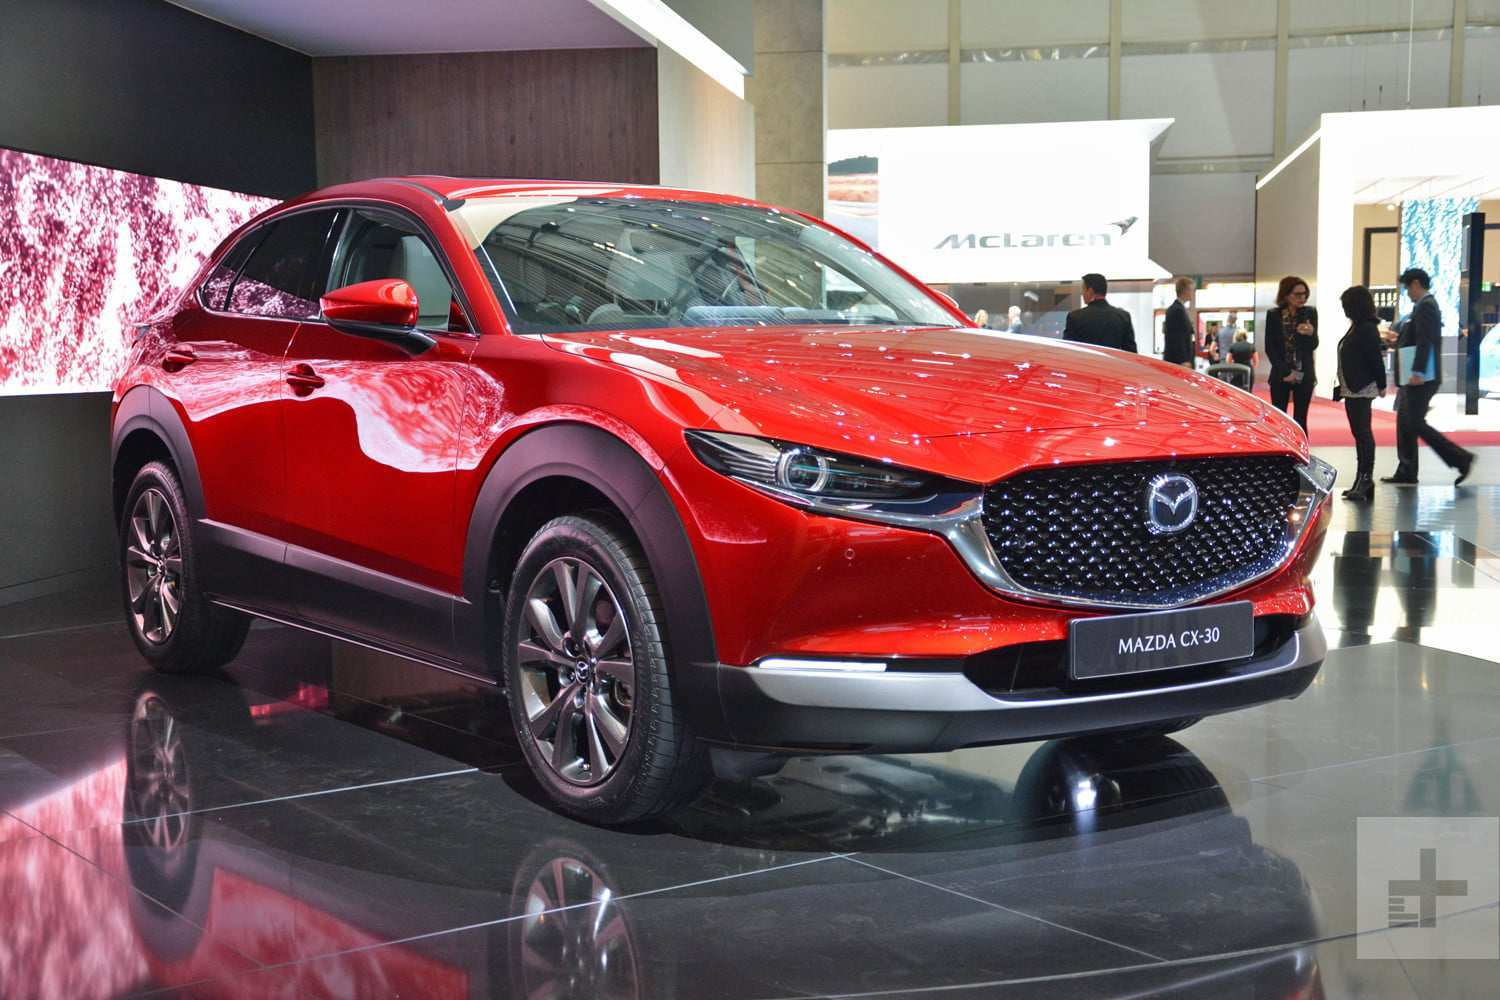 35 Great 2020 Mazda Cx 30 Price Speed Test with 2020 Mazda Cx 30 Price